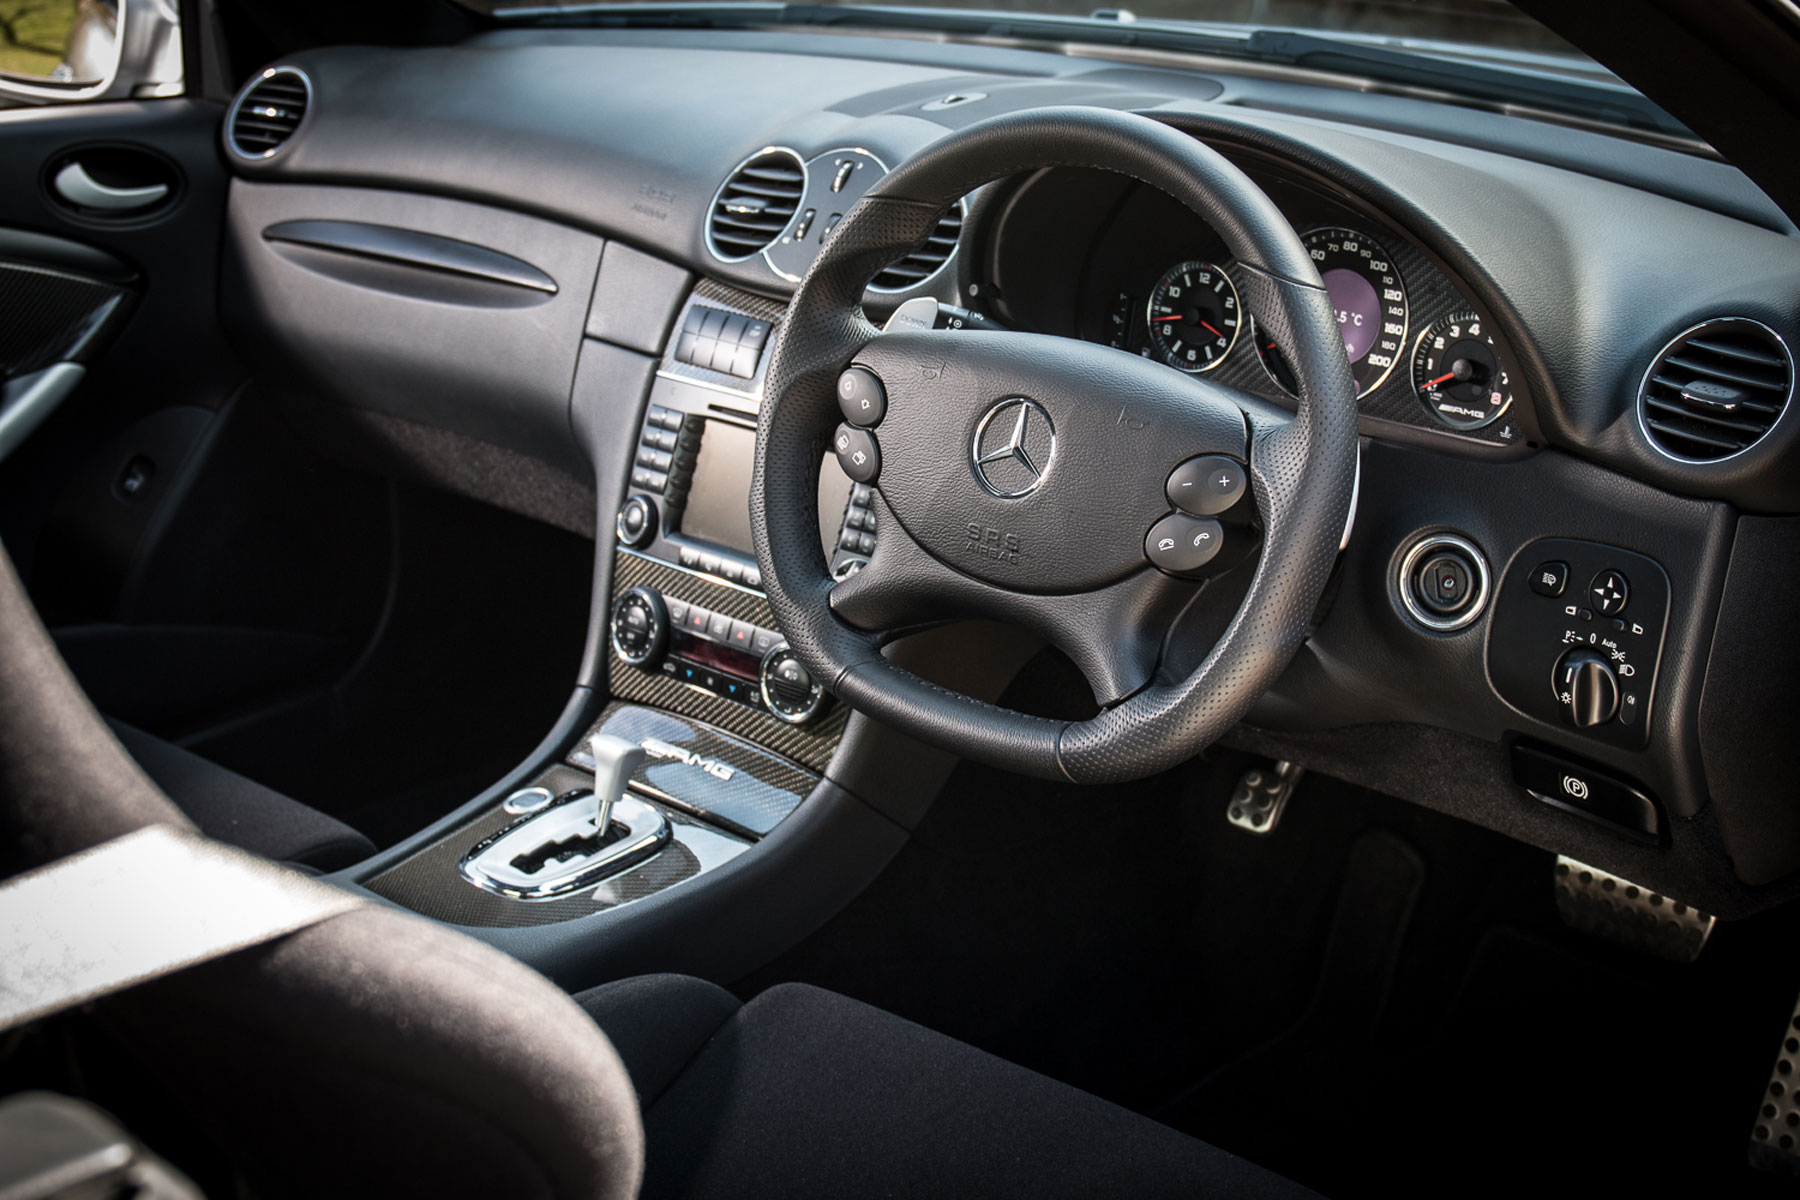 Mercedes-Benz CLK63 AMG Black interior